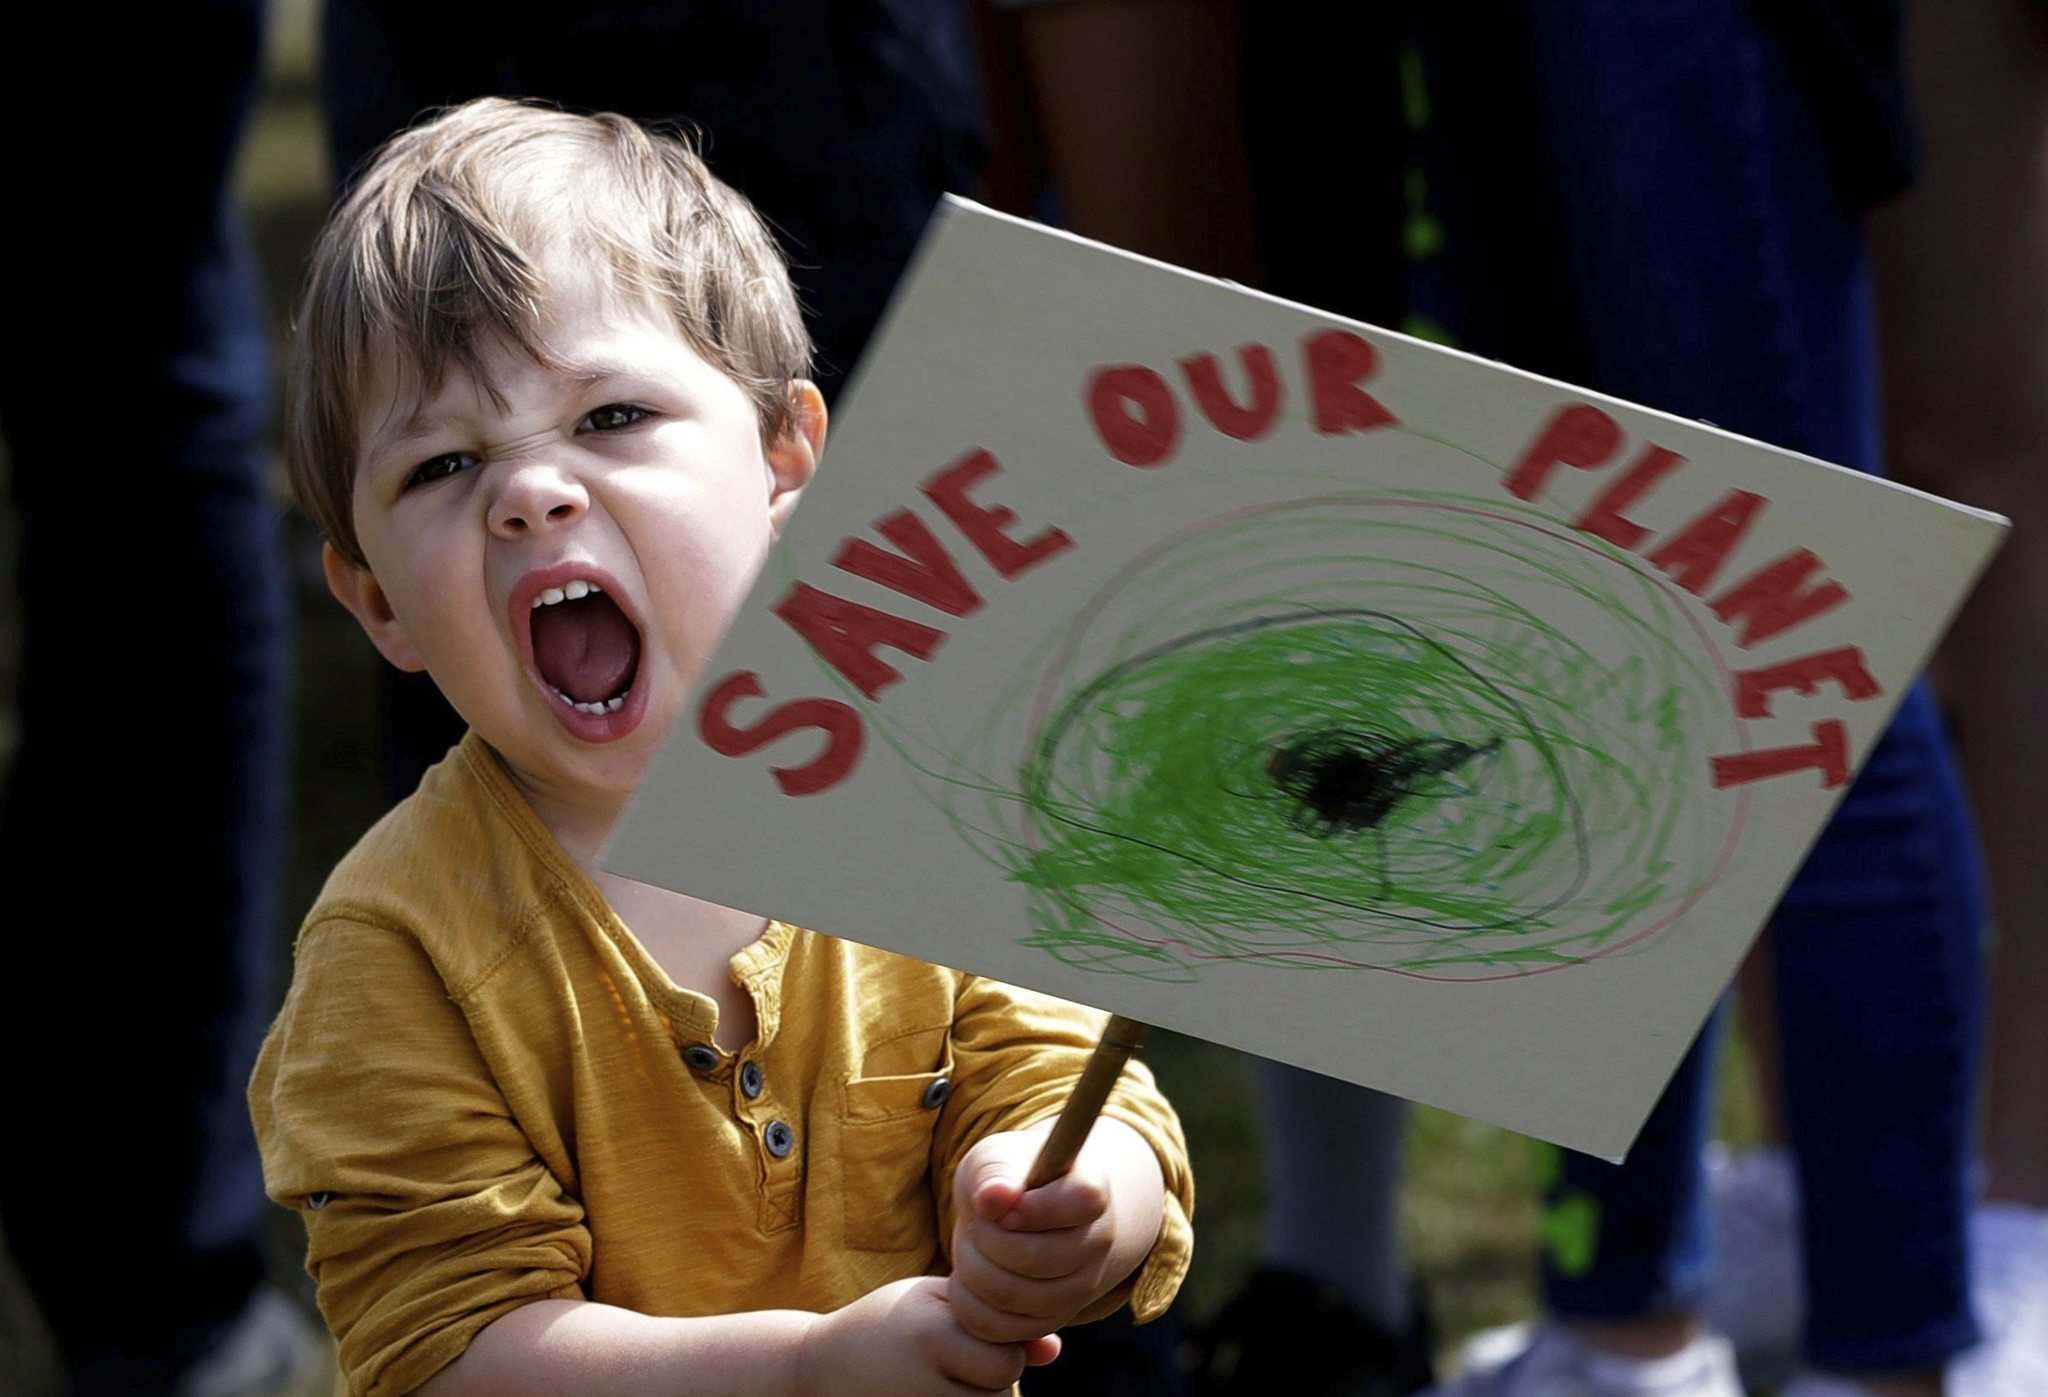 Kirsty Wigglesworth / The Associated Press files</p><p>A young protester takes part in a demonstration organized by Global Strike 4 Climate in London, England, on May 24.</p>